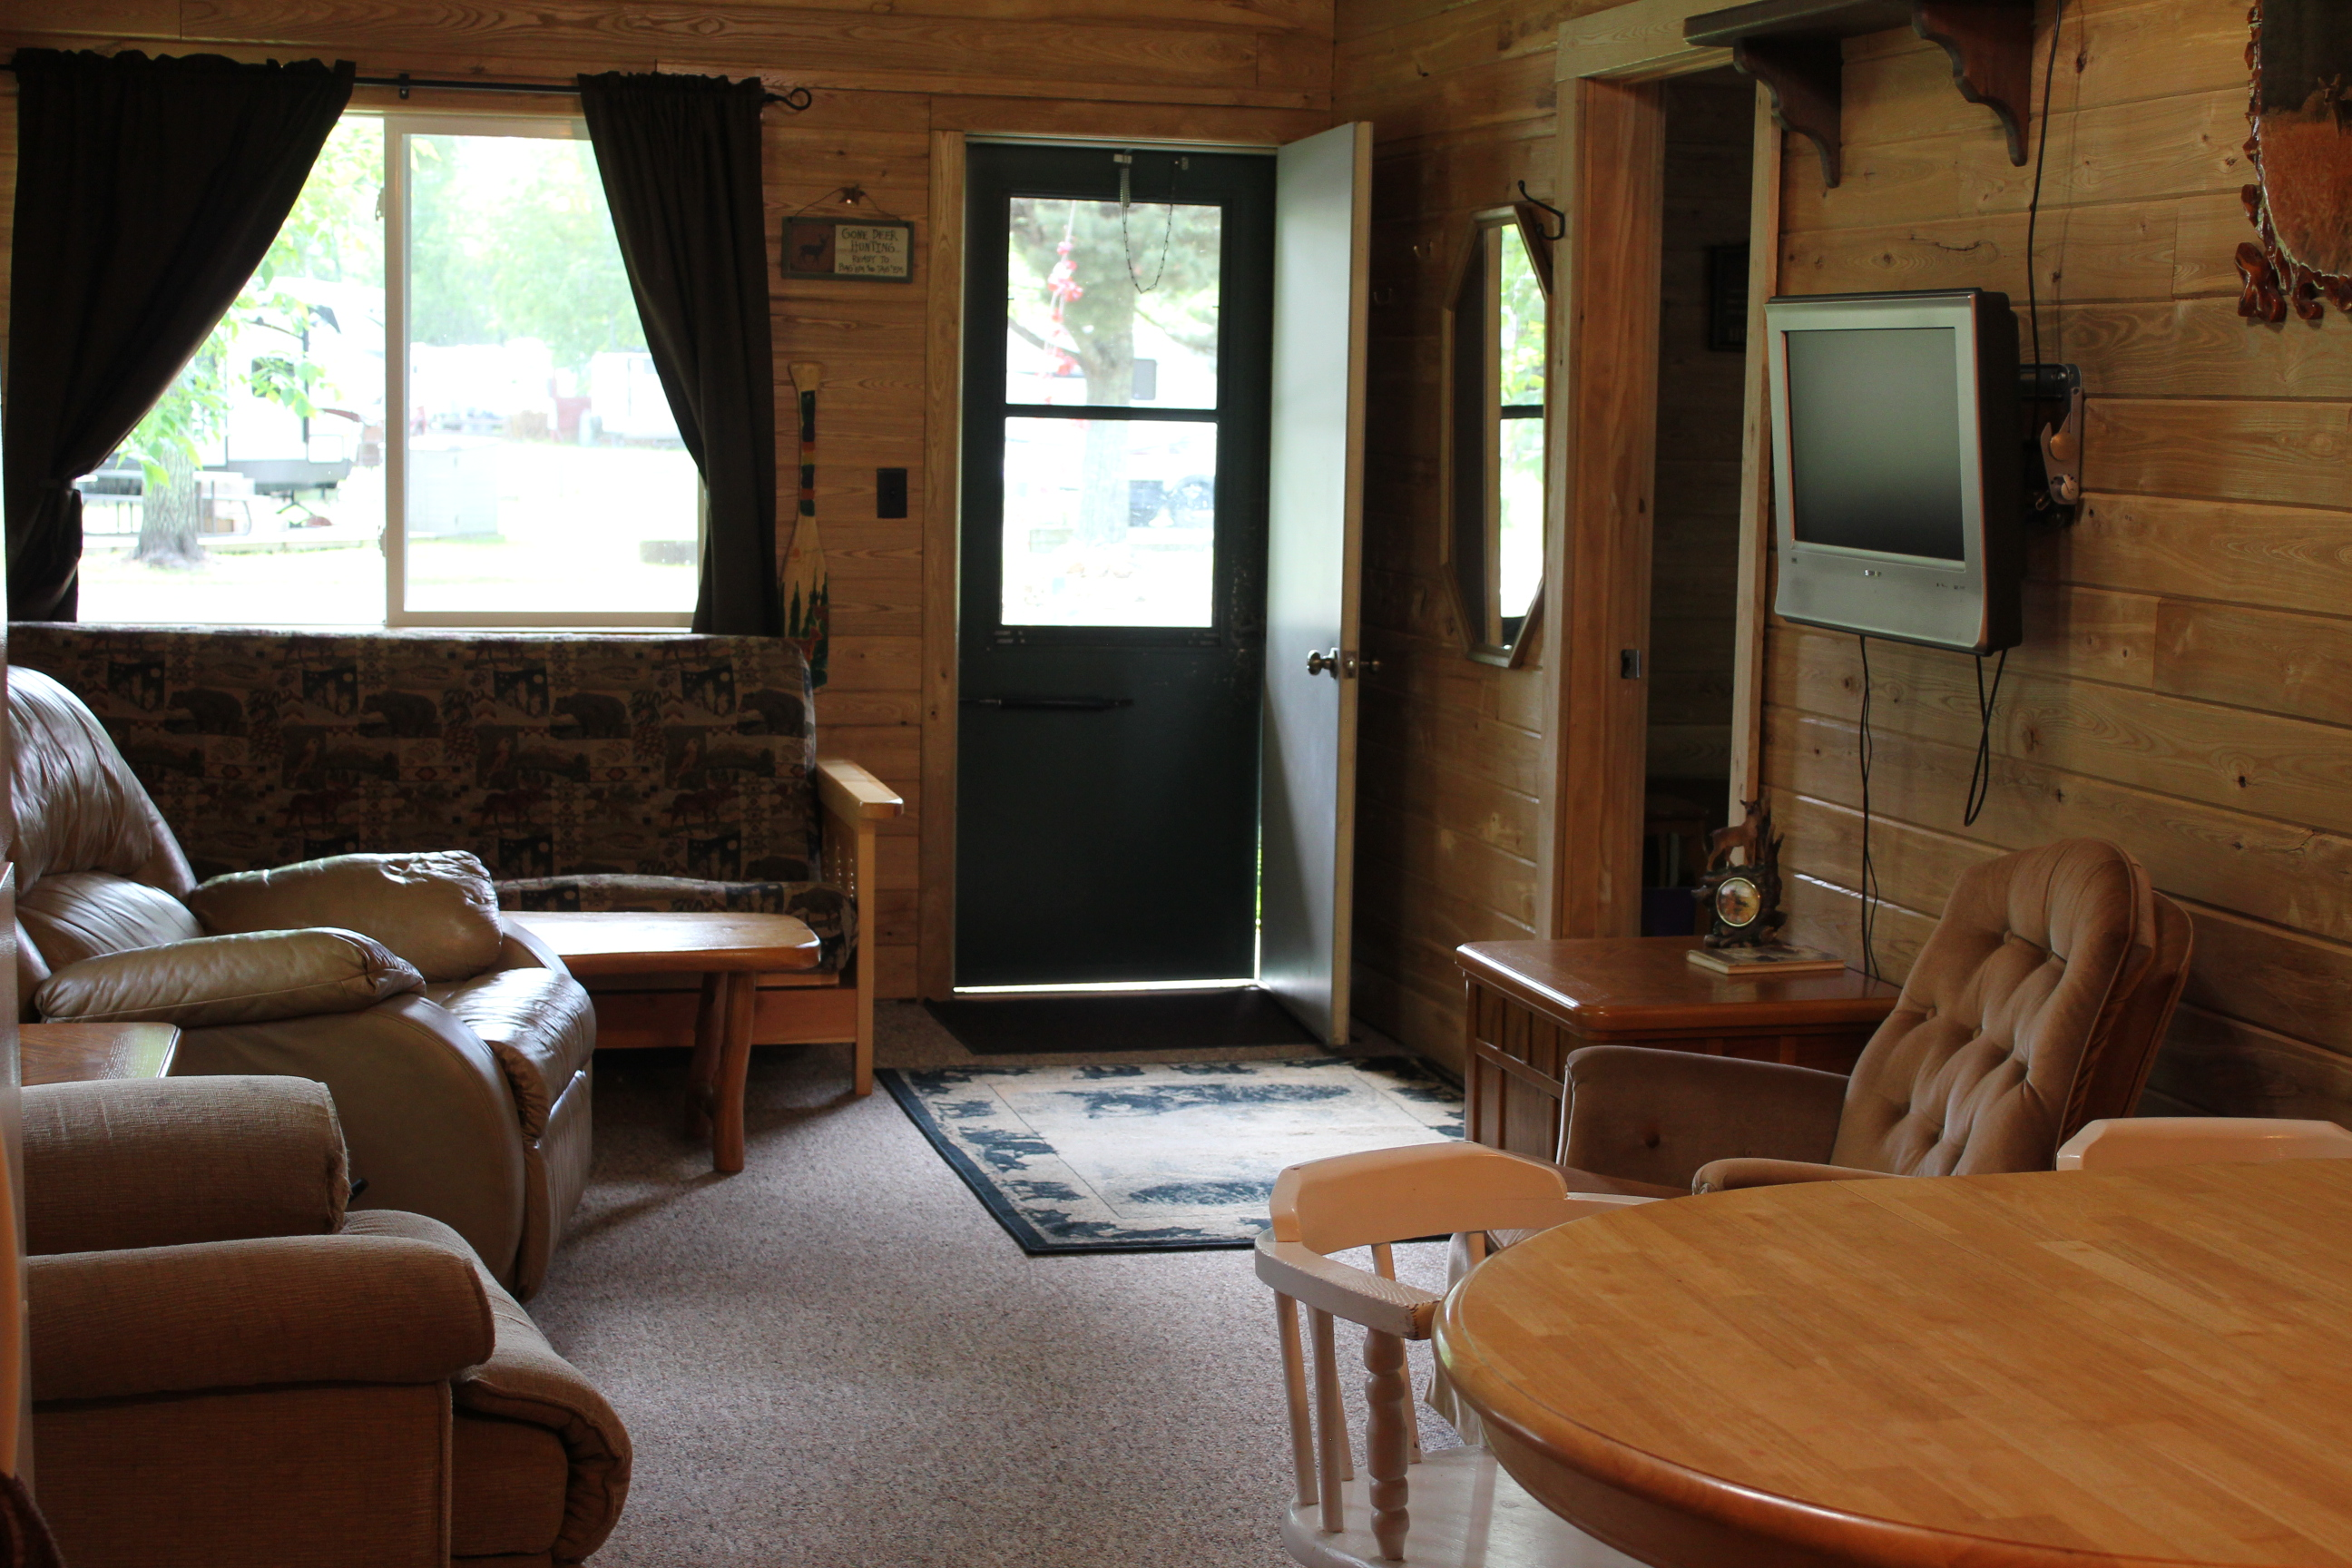 Family resort, rental cabin #2